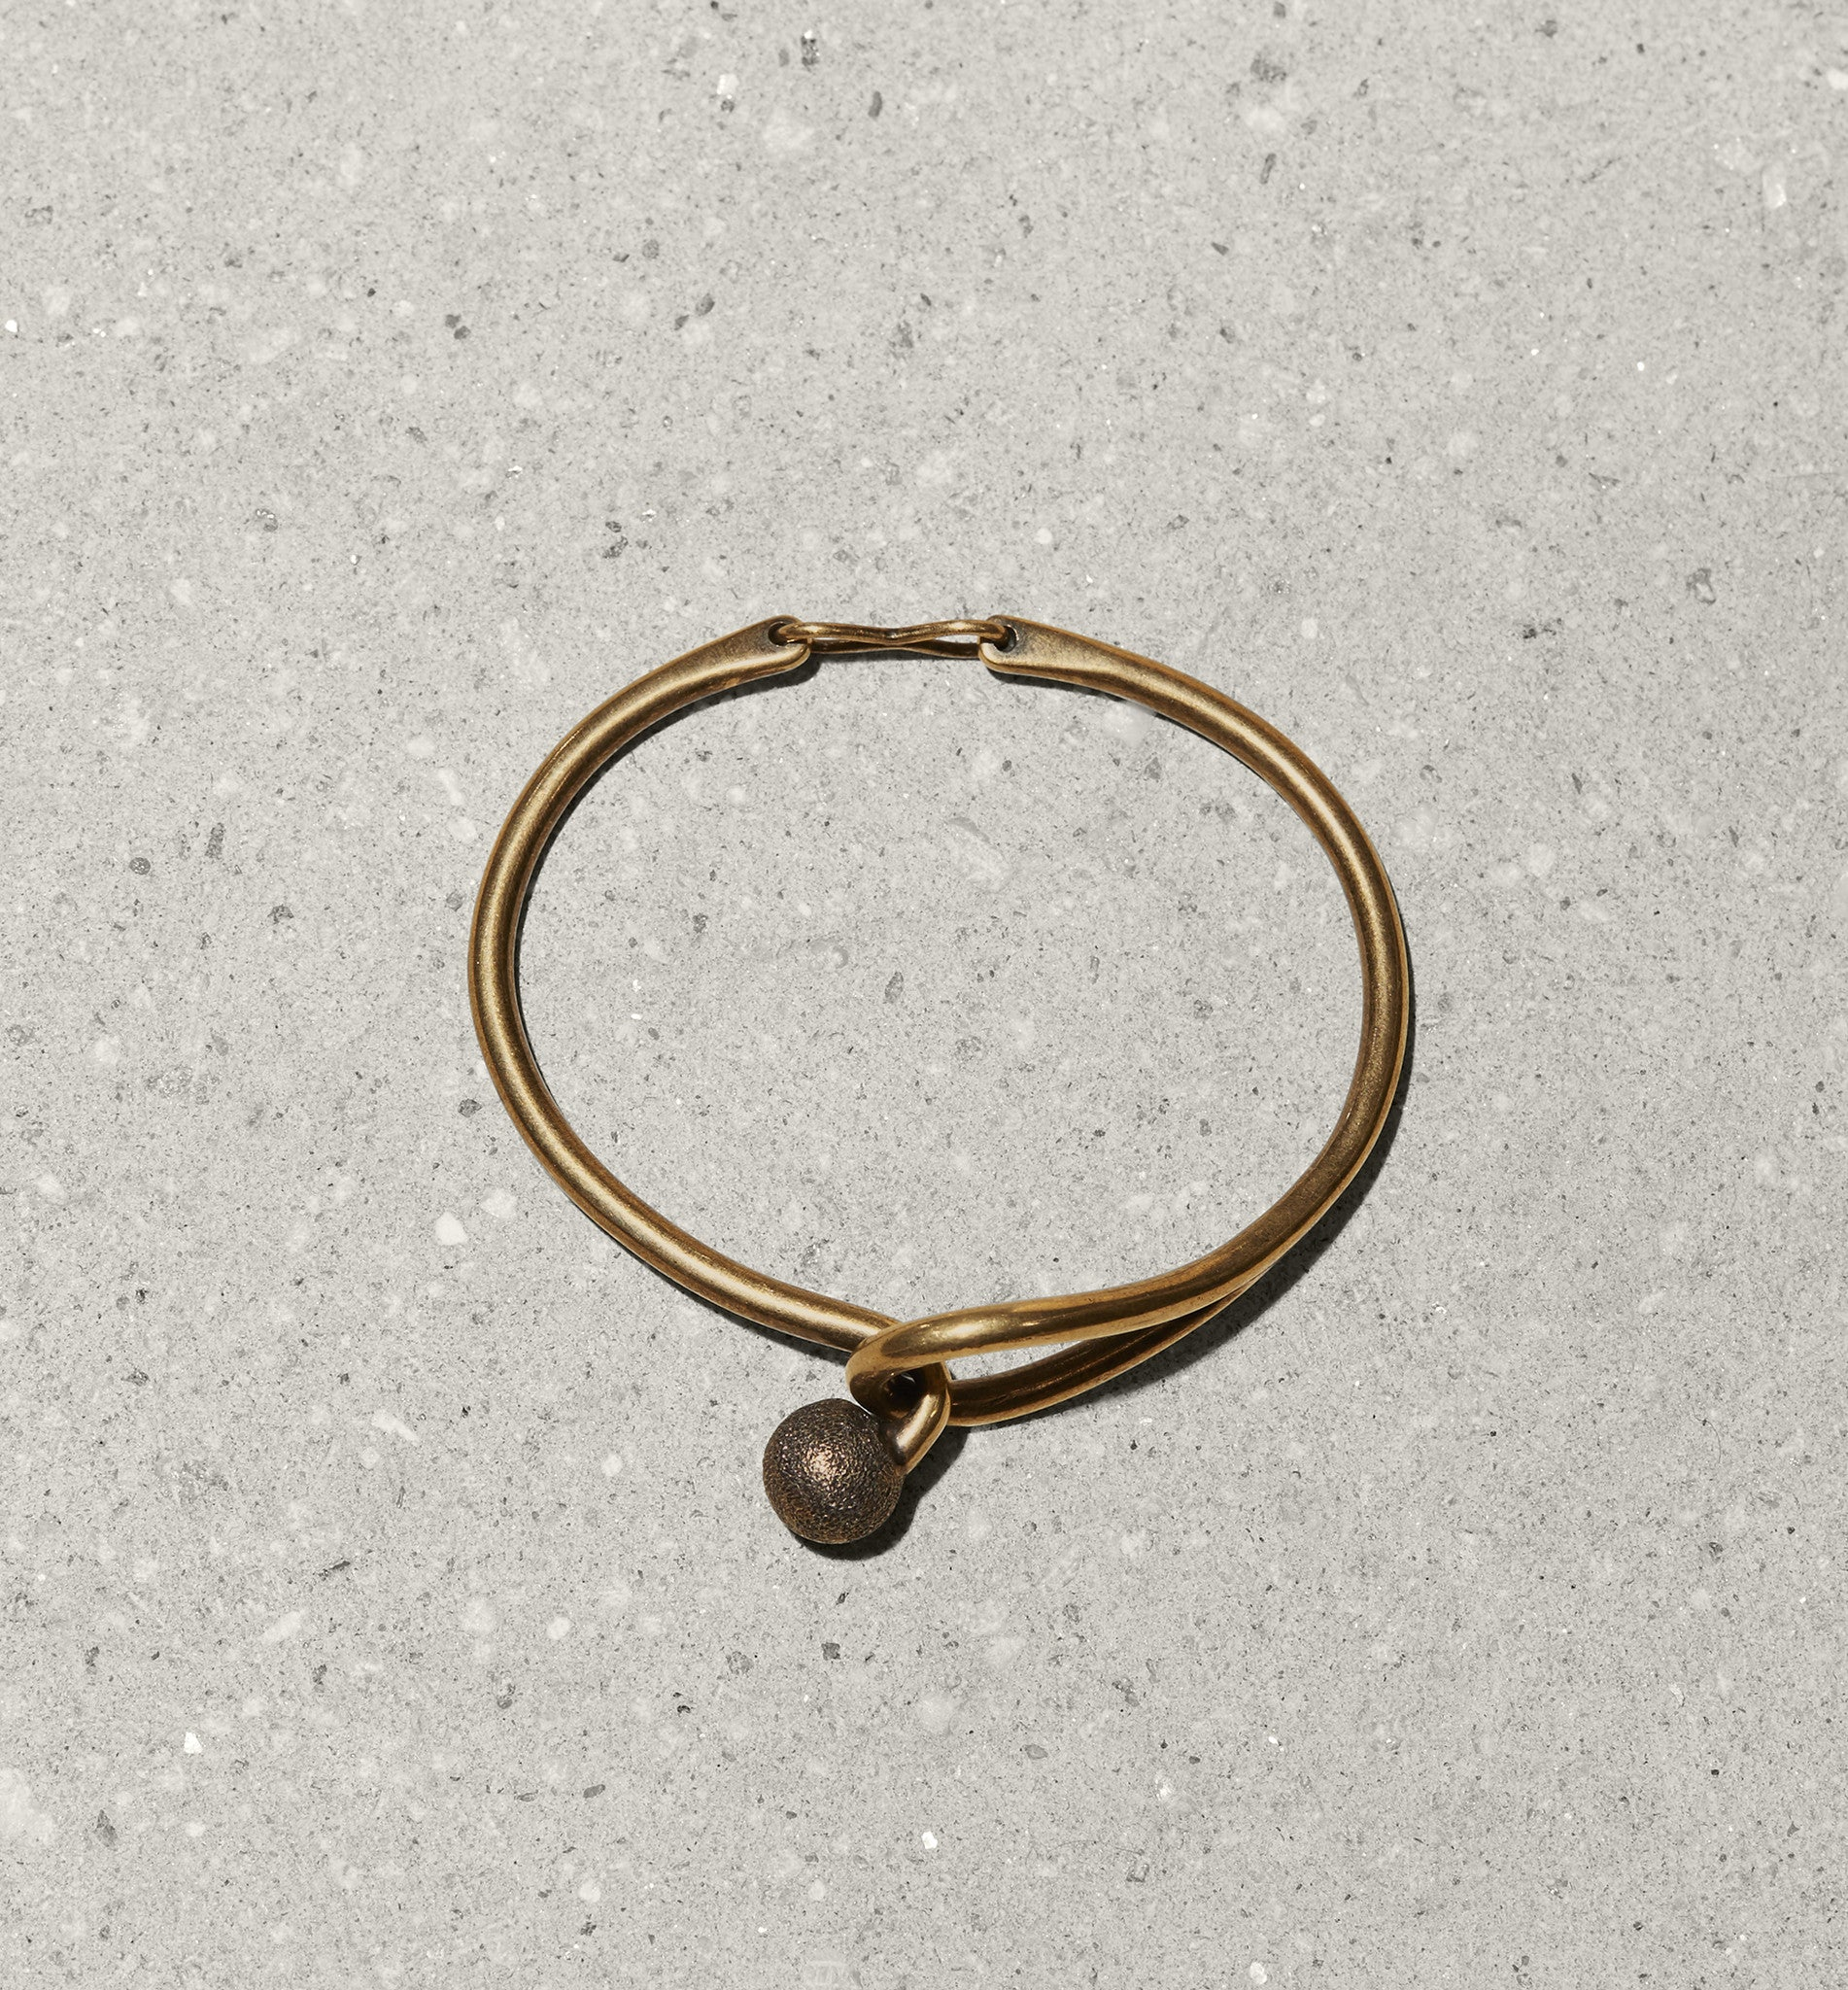 hinged metal bracelet